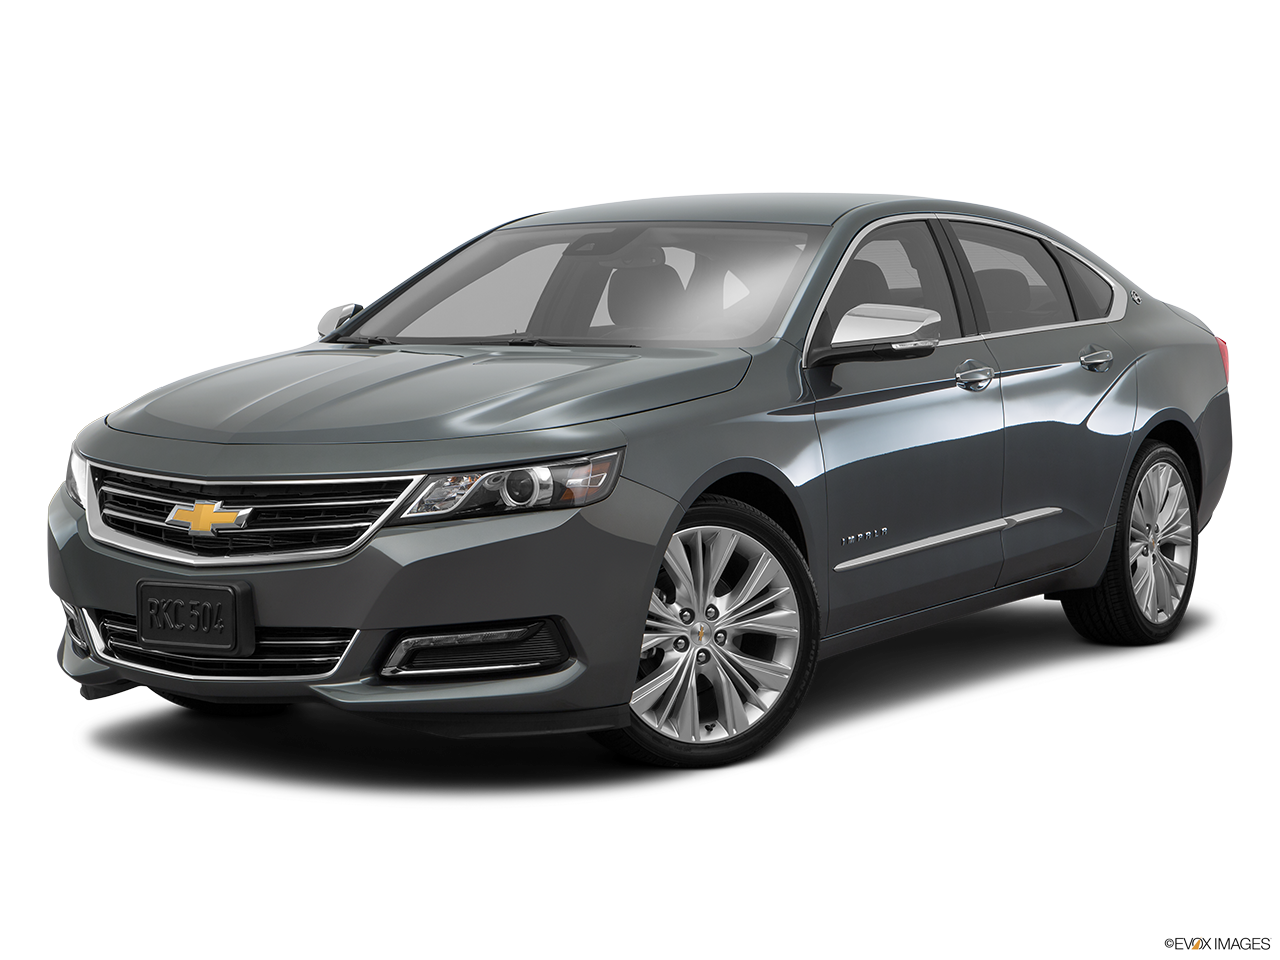 Test drive a 2016 chevrolet impala at alamo city chevrolet in san antonio